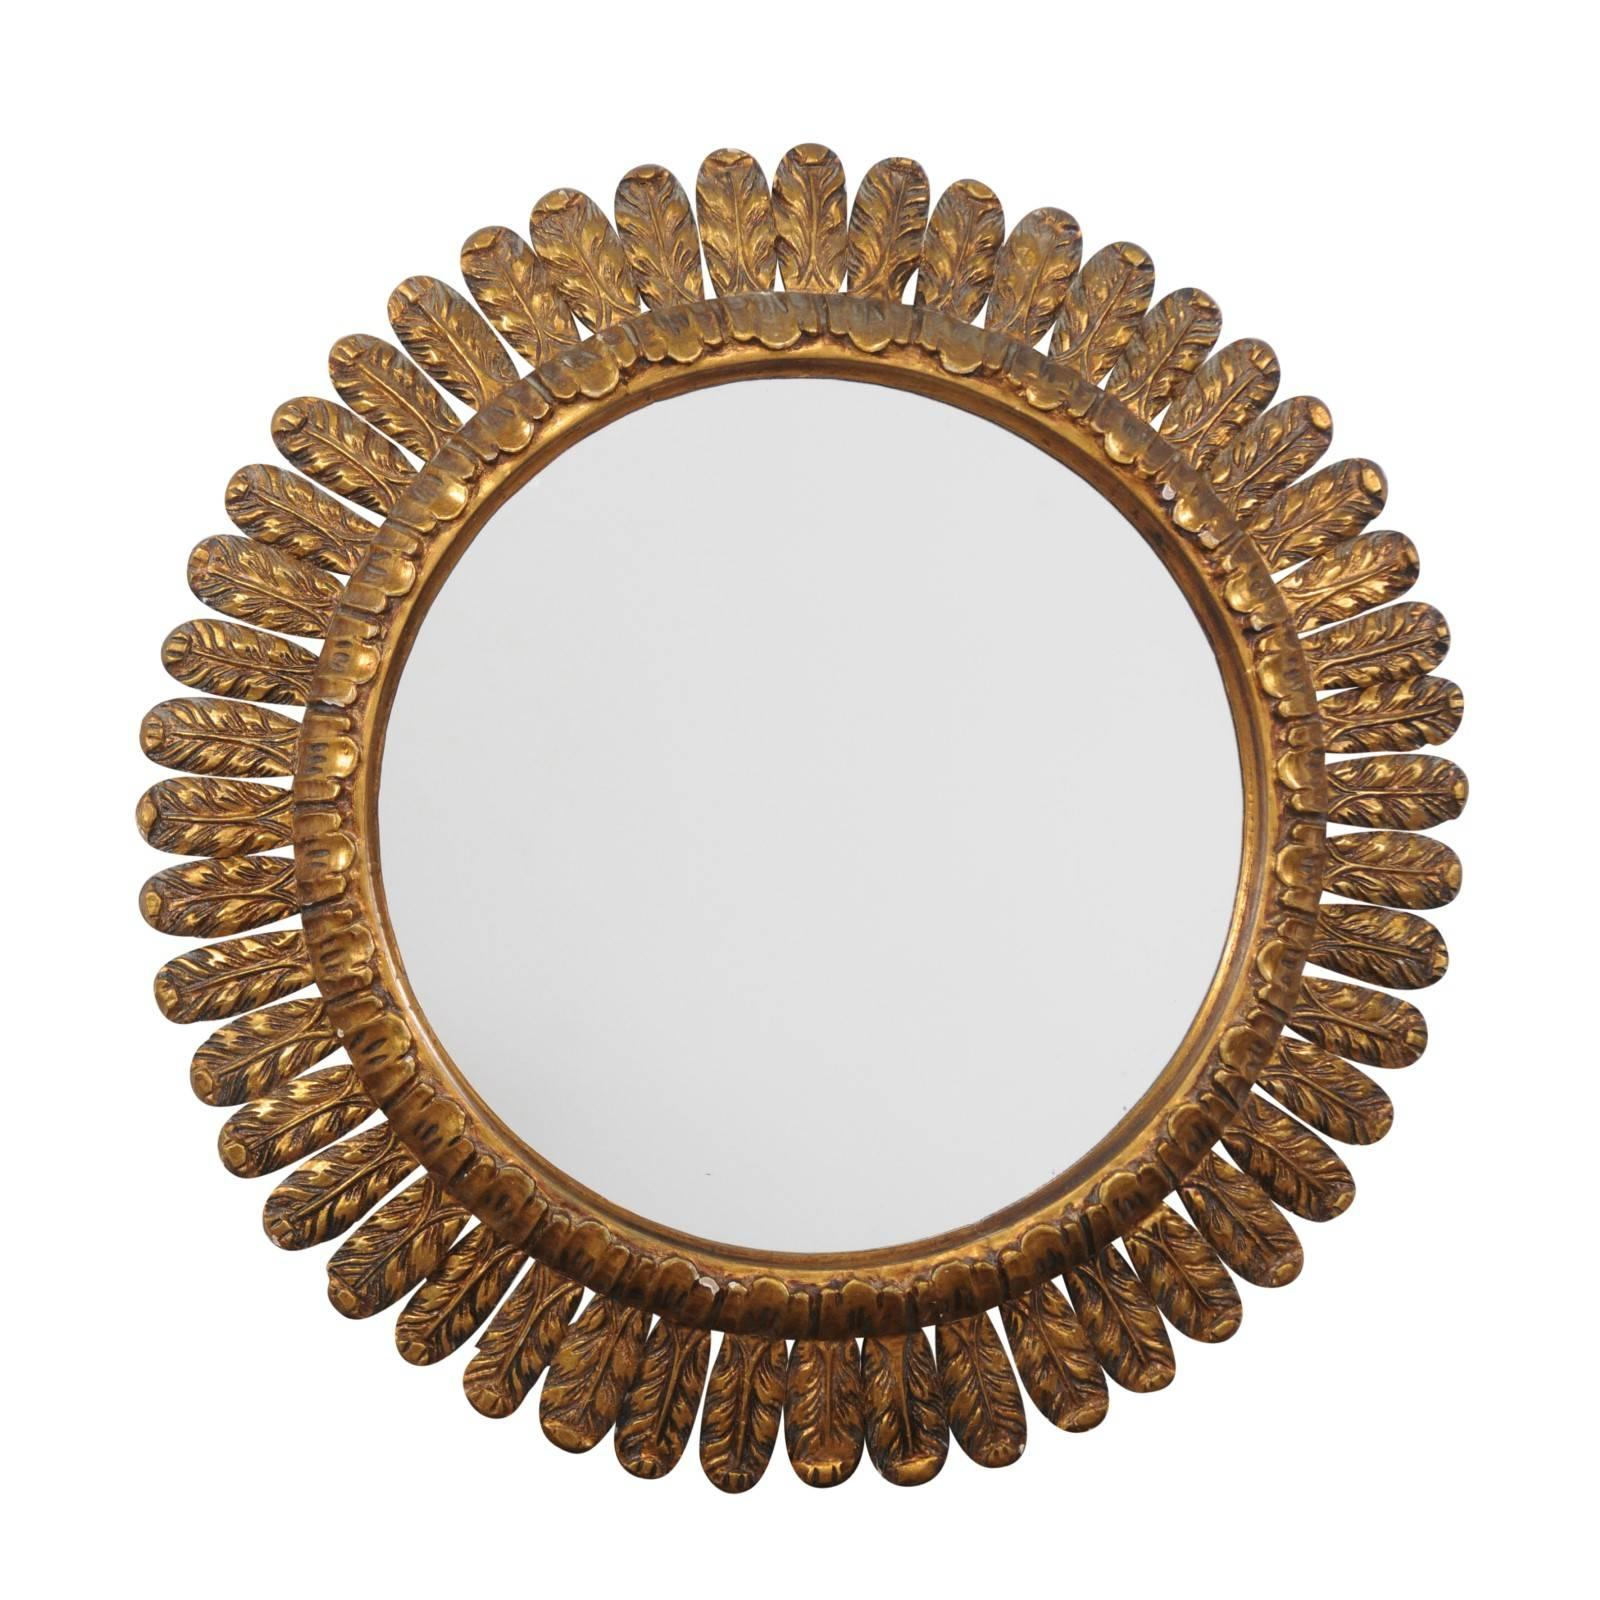 French Vintage Giltwood Sunburst Mirror with Waterleaves from the Midcentury